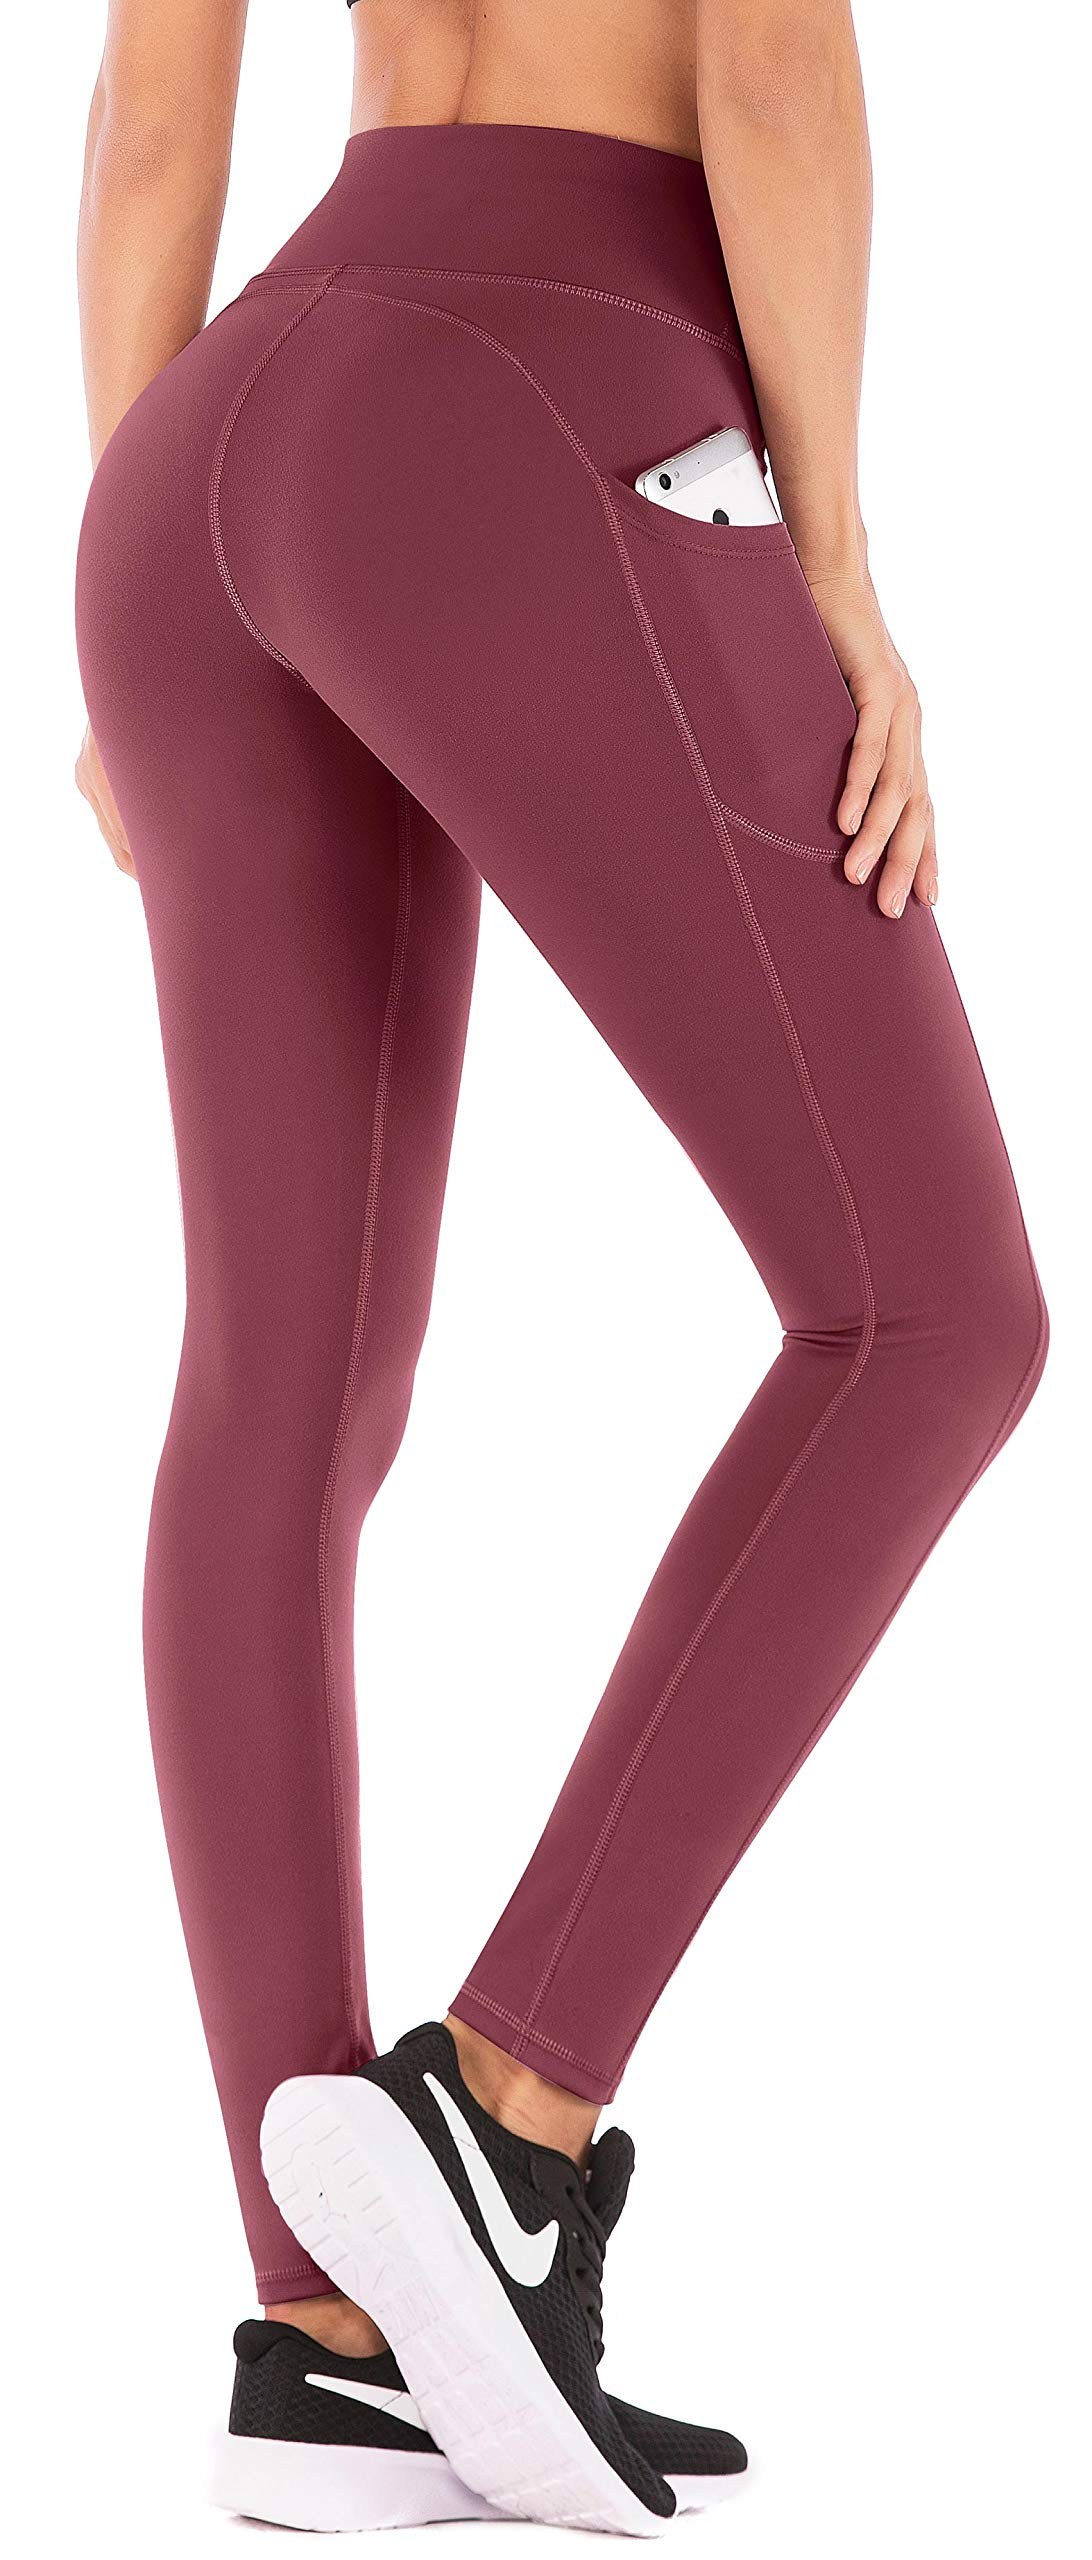 IUGA High Waist Yoga Pants with Pockets, Tummy Control, Workout Pants for Women 4 Way Stretch Yoga Leggings with Pockets 7840 ZHUHON XXL by IUGA